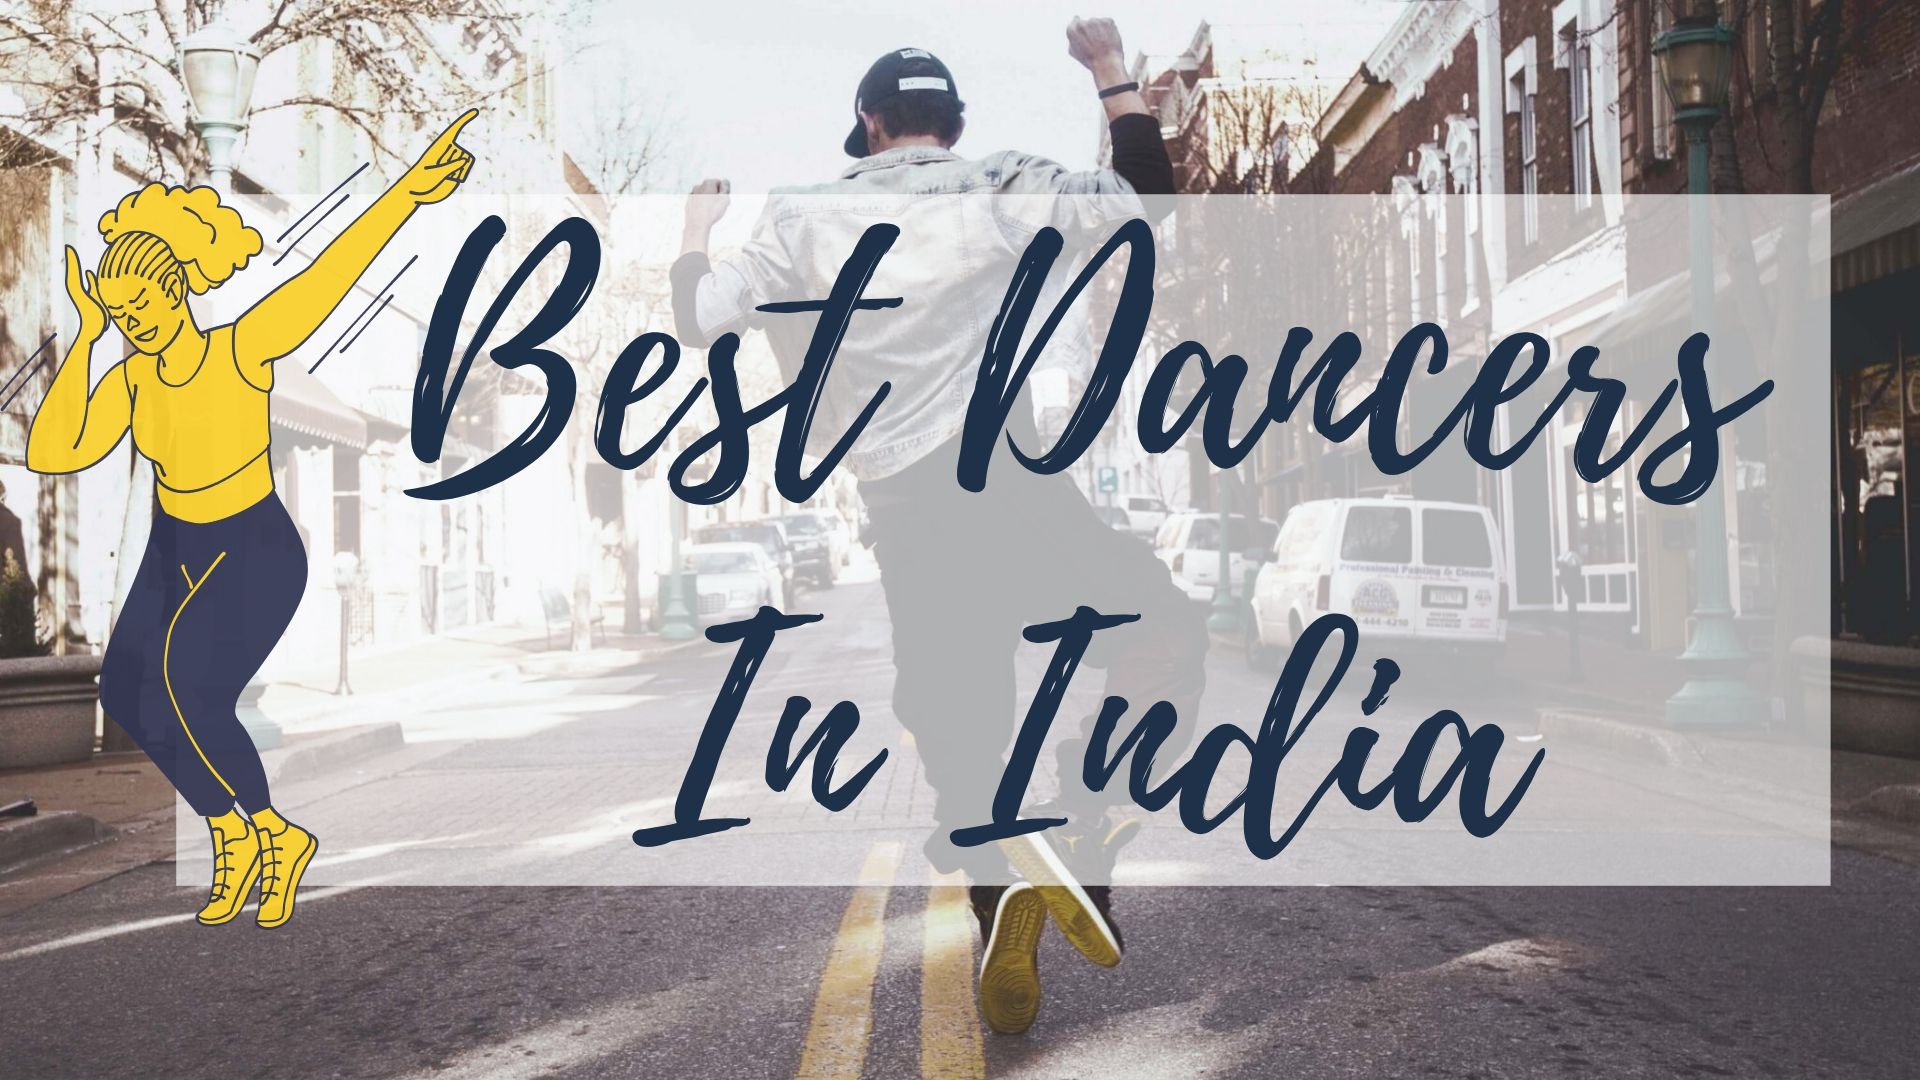 Best dancers in india